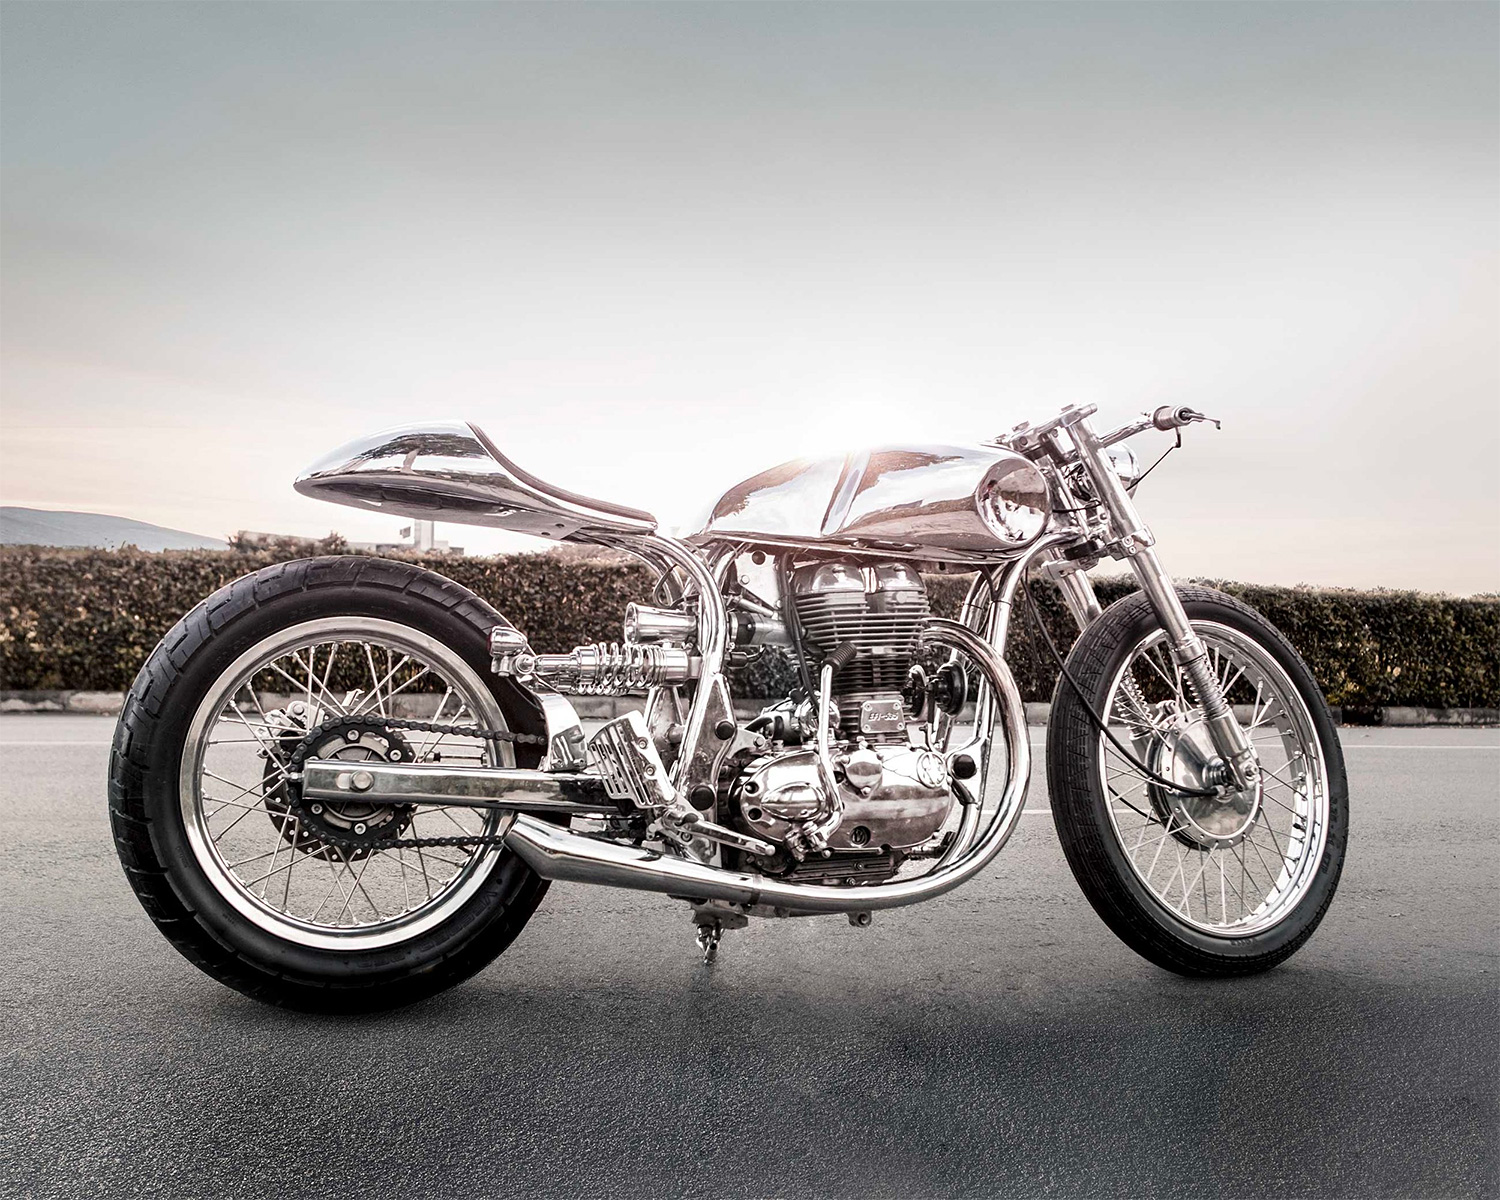 Bandit 9 Goes Full Chrome On This Classic British Bike at werd.com